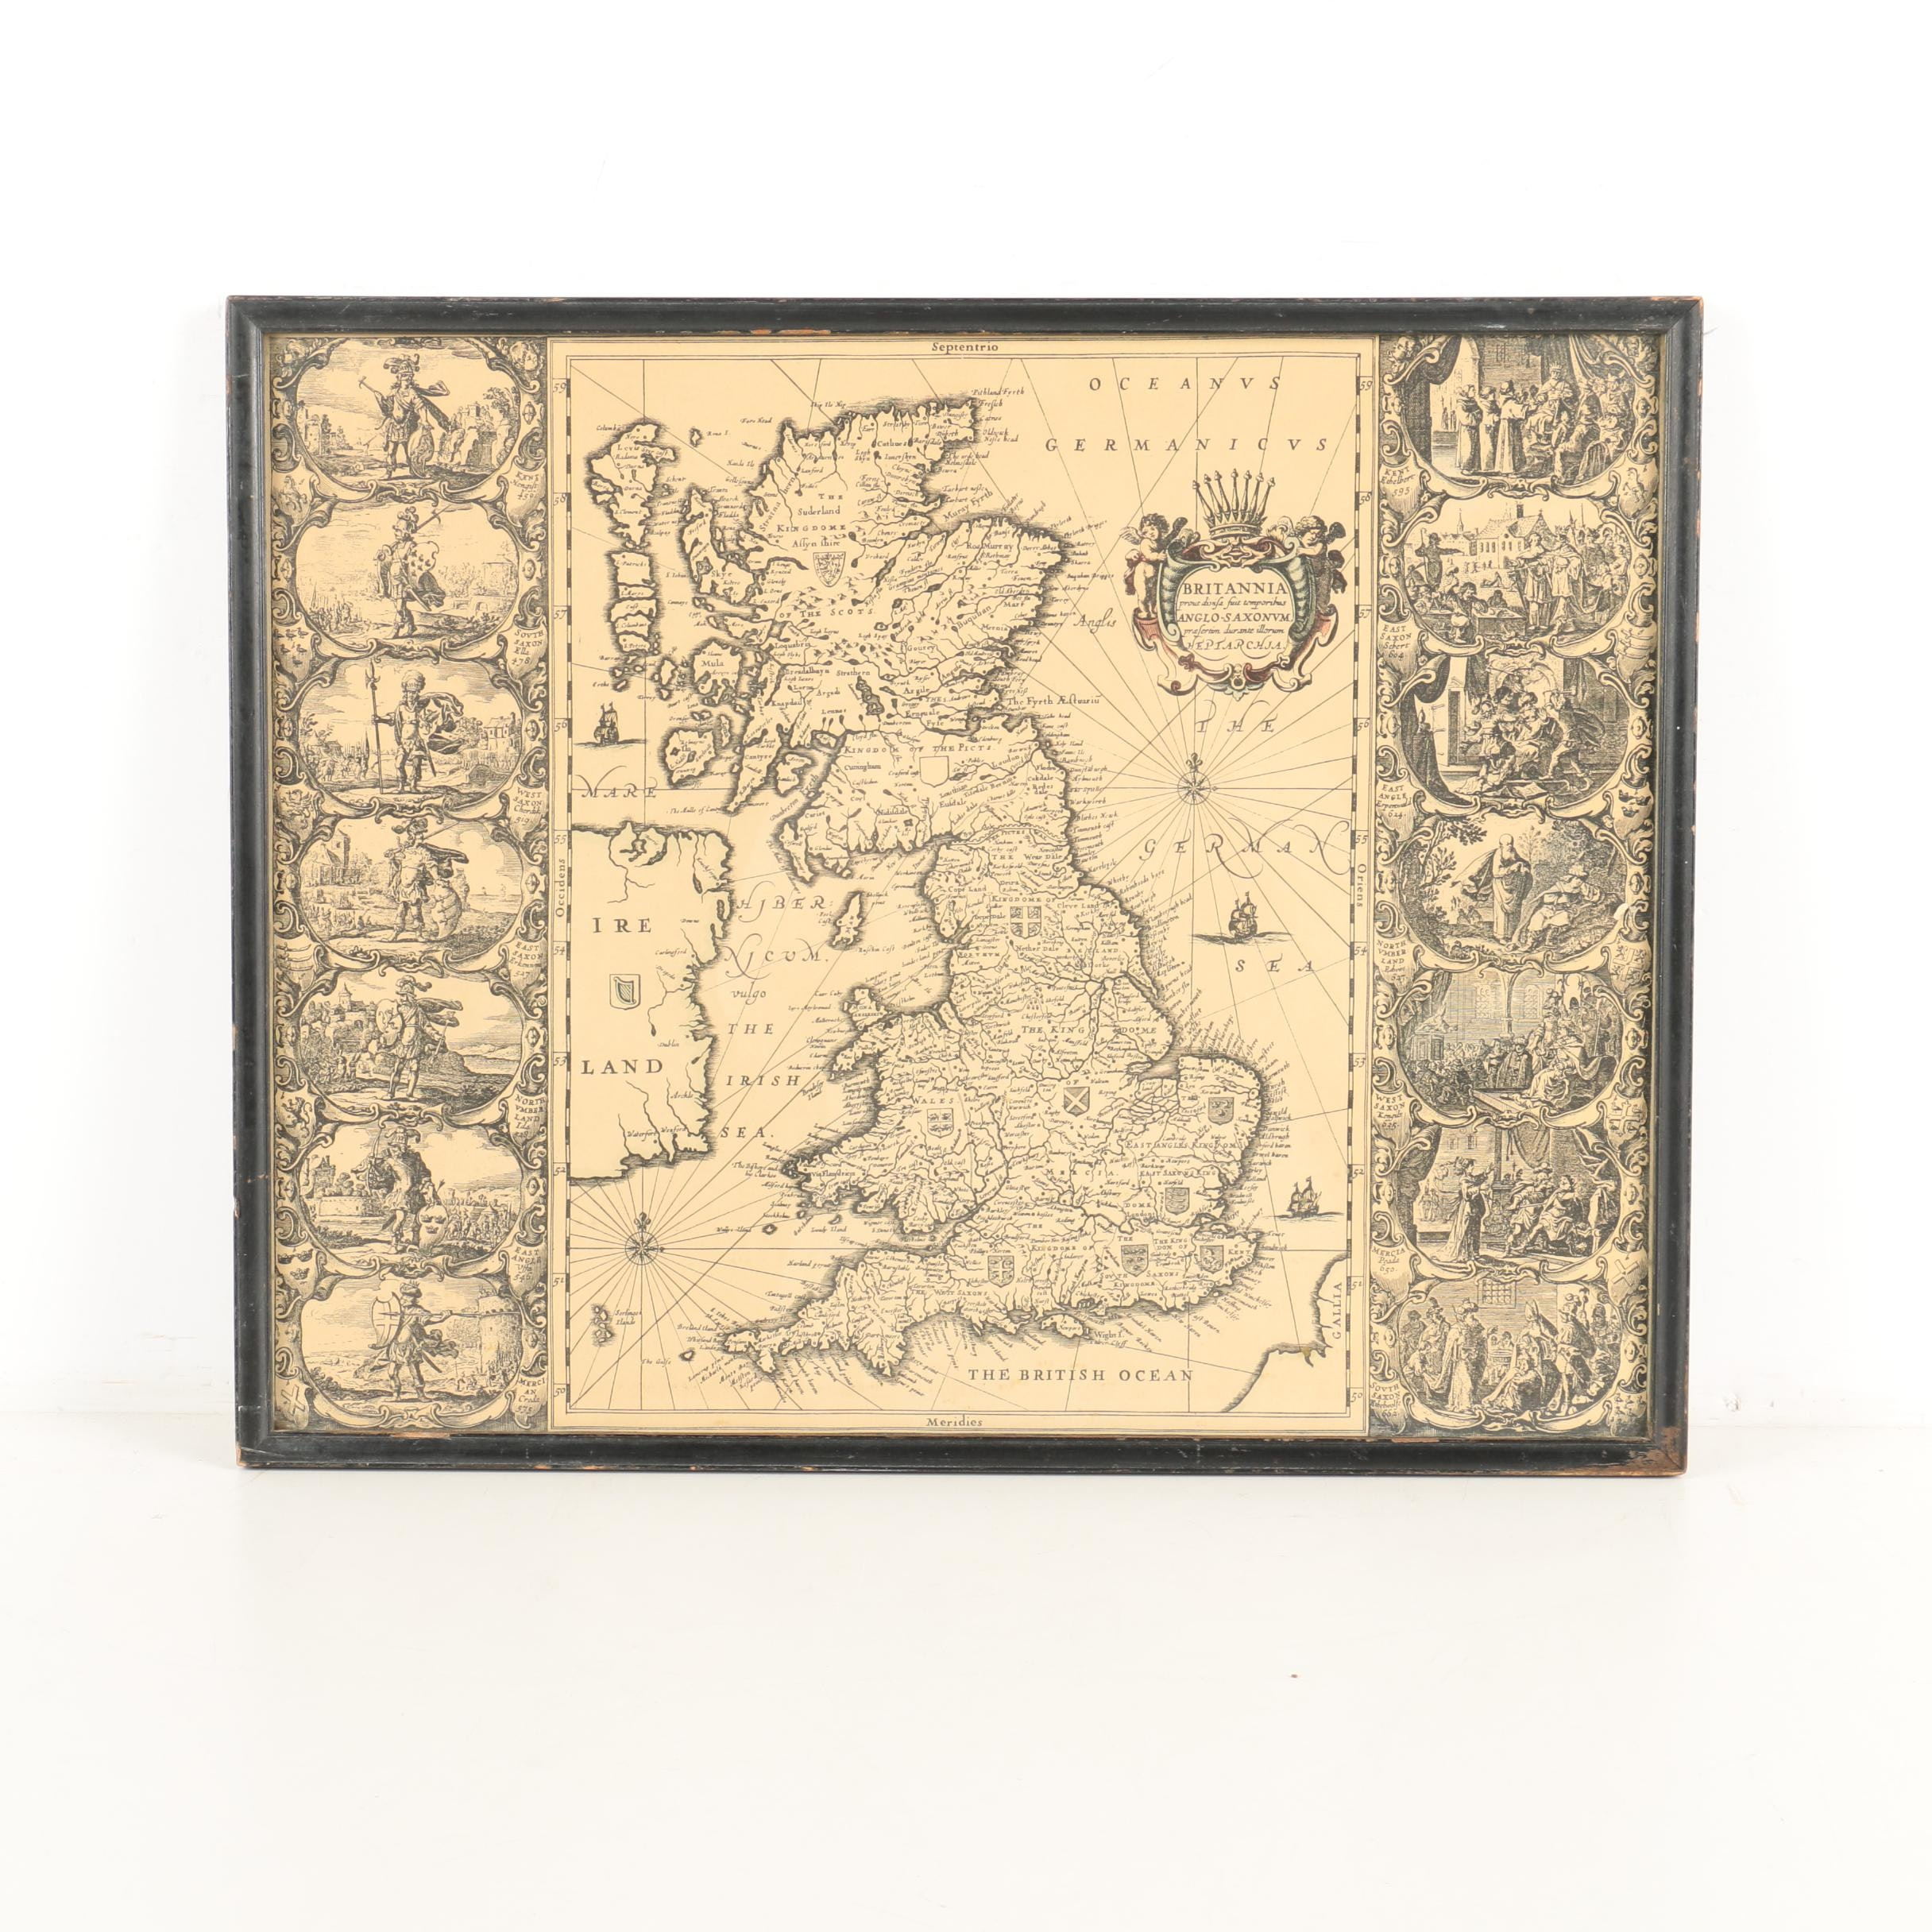 Intaglio Print on Paper of Antique Map of England